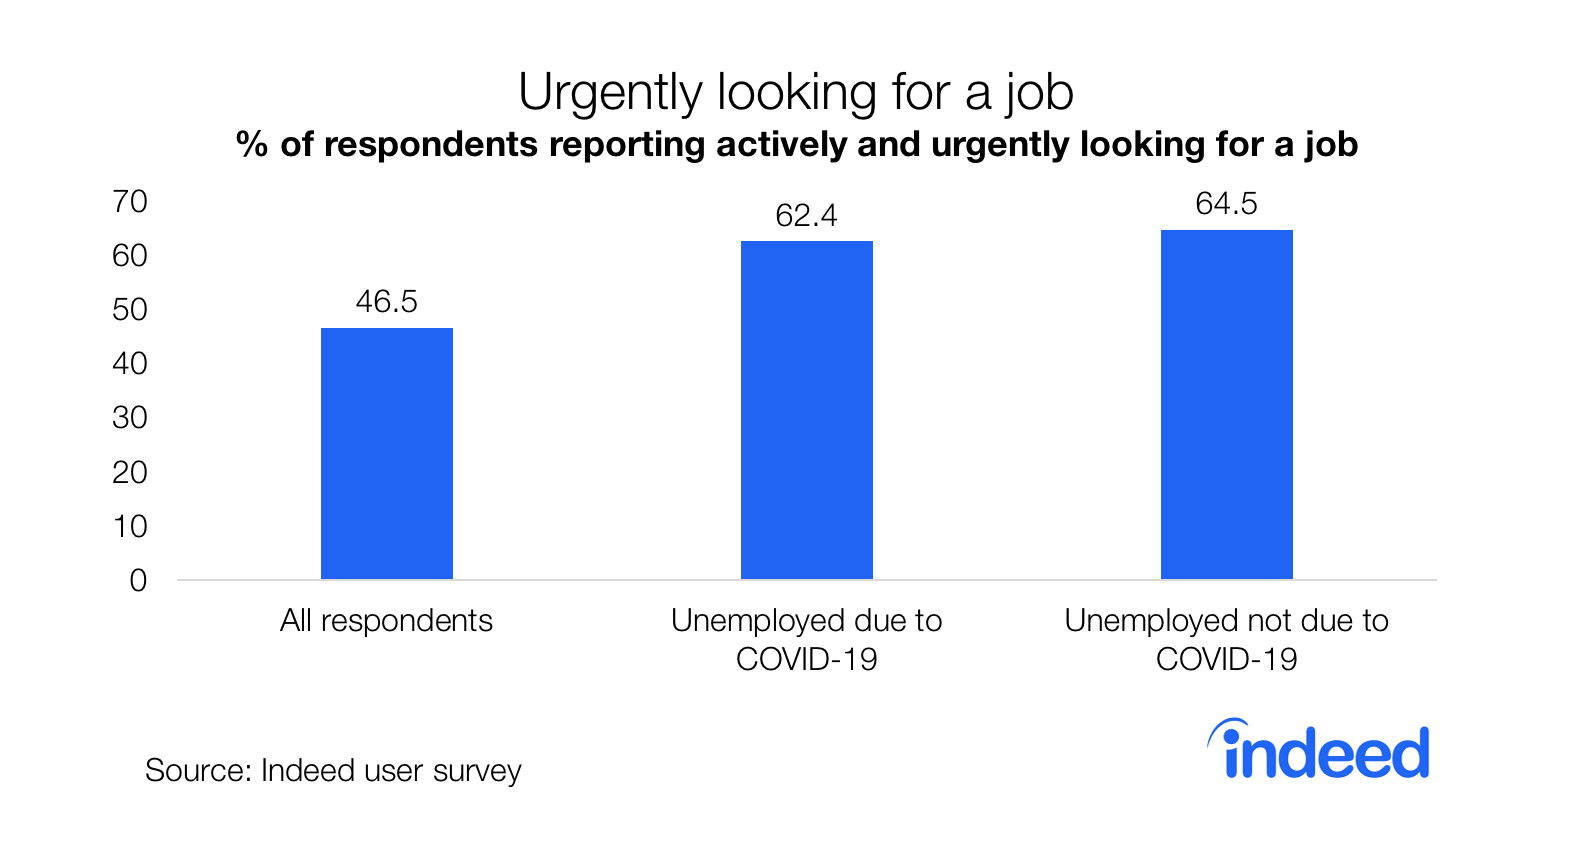 Graph showing percentage of respondents actively and urgently looking for job US